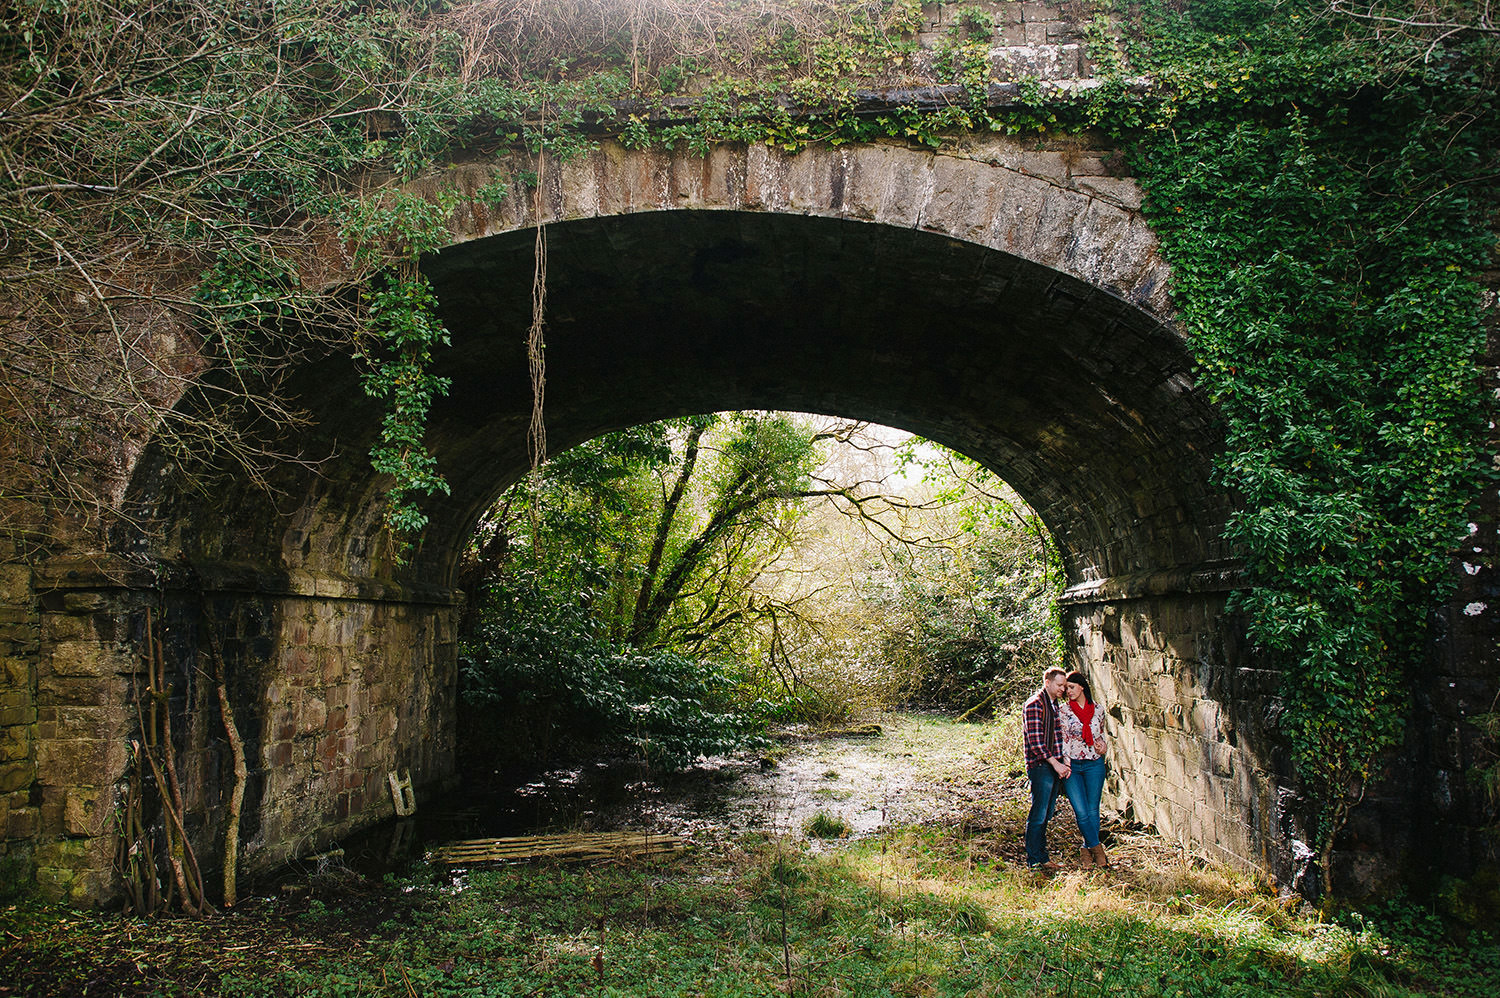 Engagement photos NI. Northern Ireland. Engagement photos. How much does an engagement shoot cost.